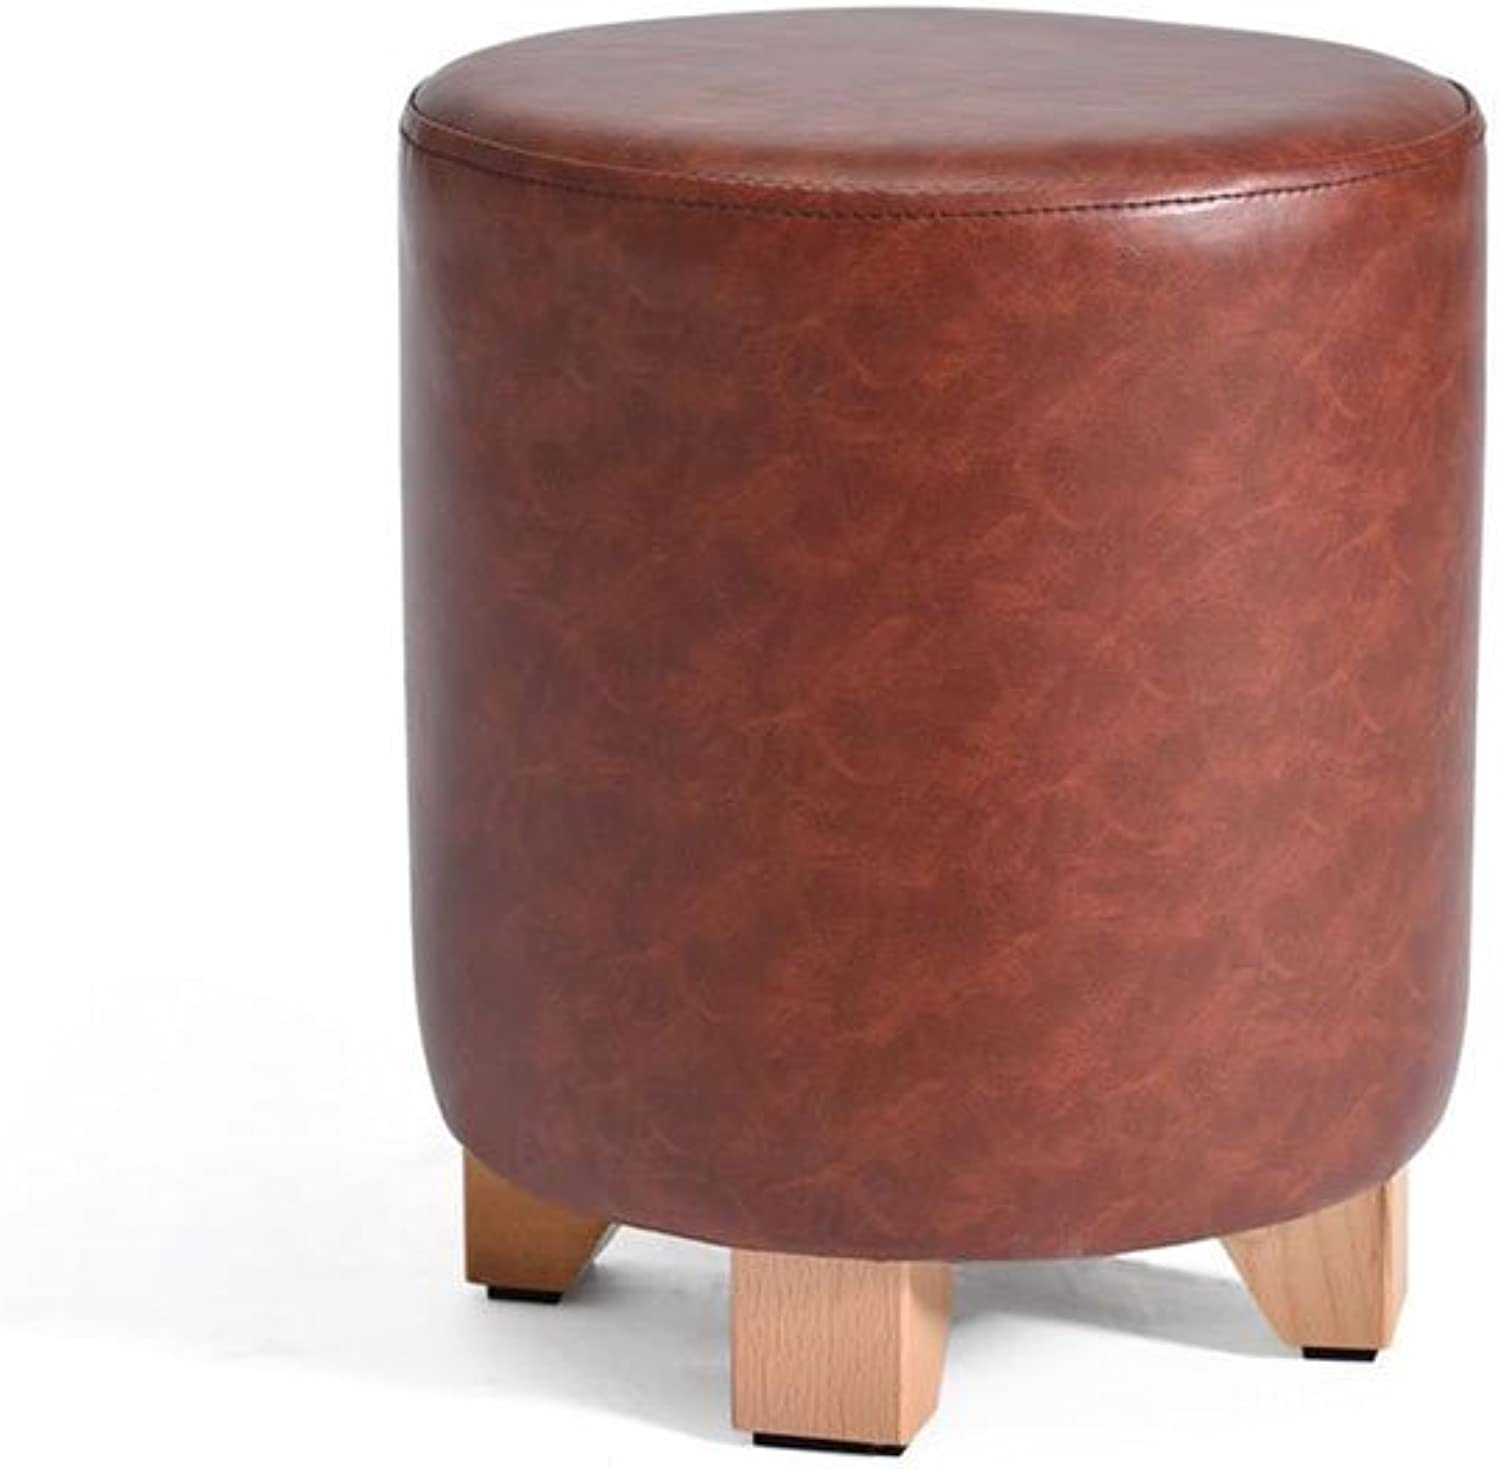 CJC Wooden Stool Household Refinement Small Easy to Carry 2 colors Home Office Furniture Kitchen (color   1)